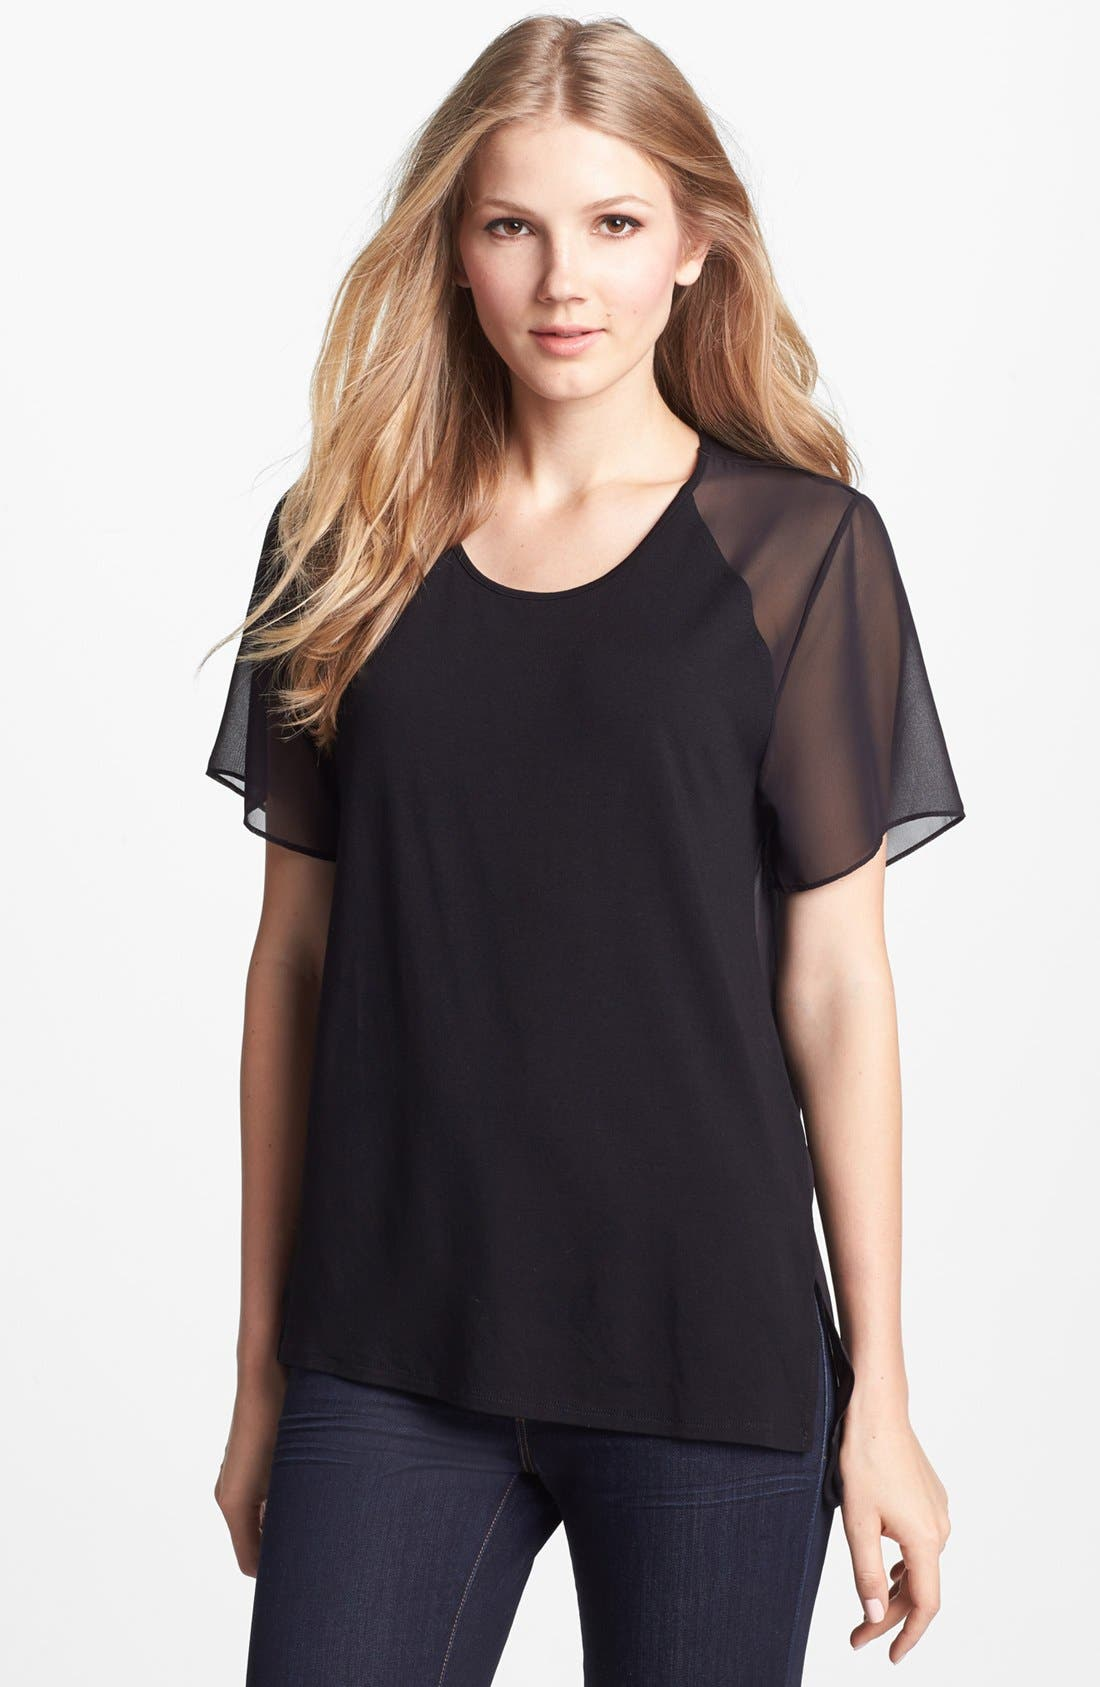 Main Image - Vince Camuto Chiffon Sleeve Mixed Media Tee